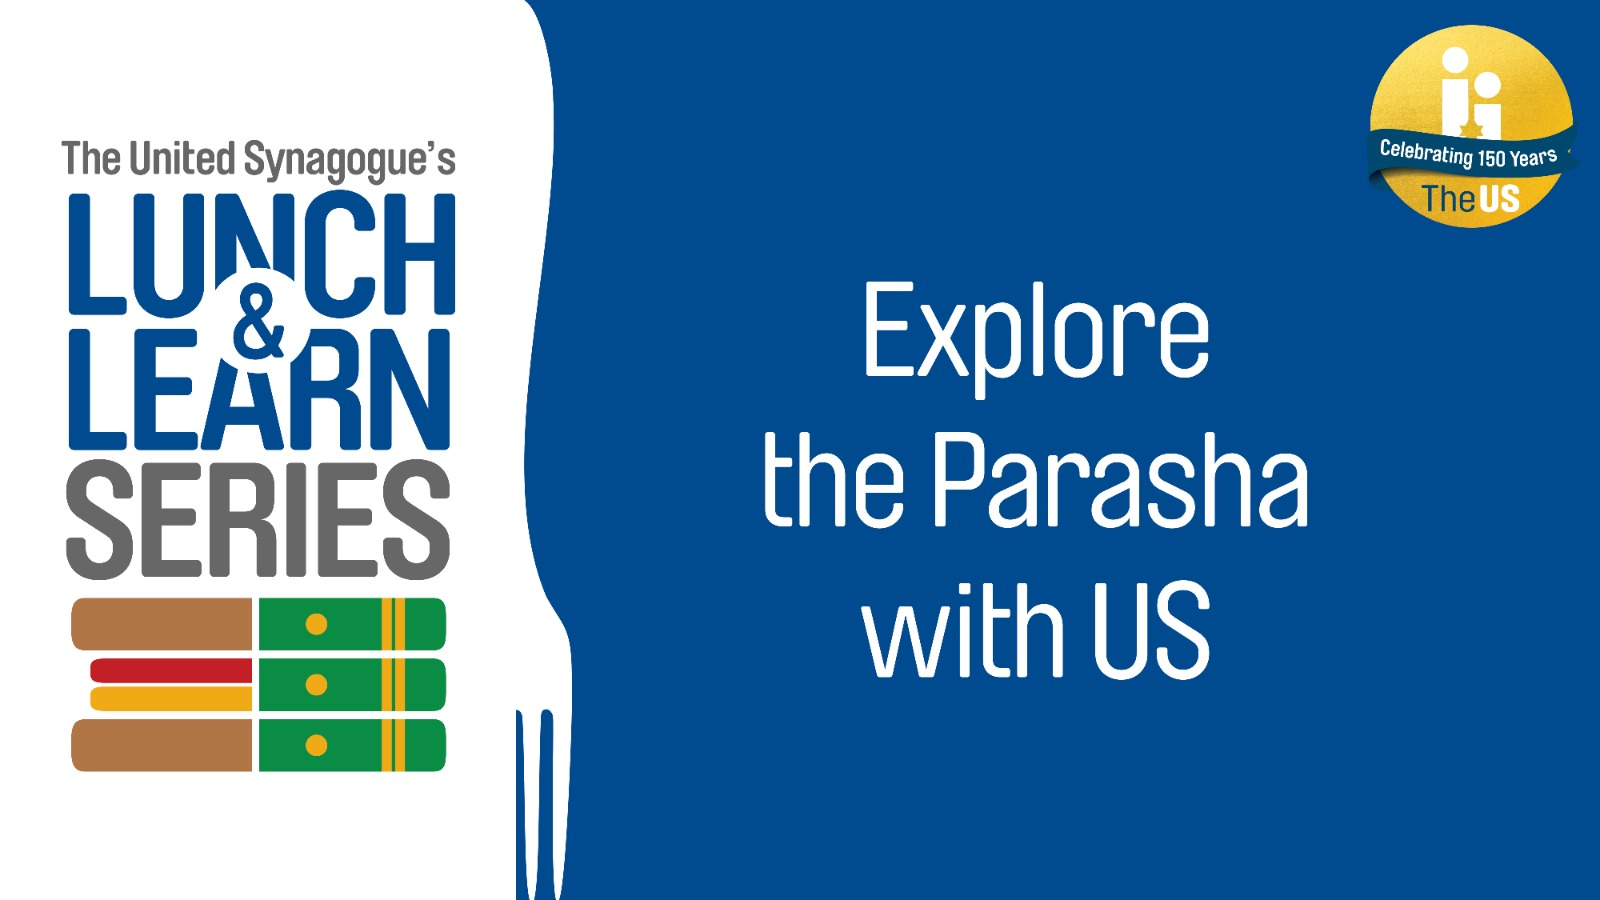 Explore the Parasha with US